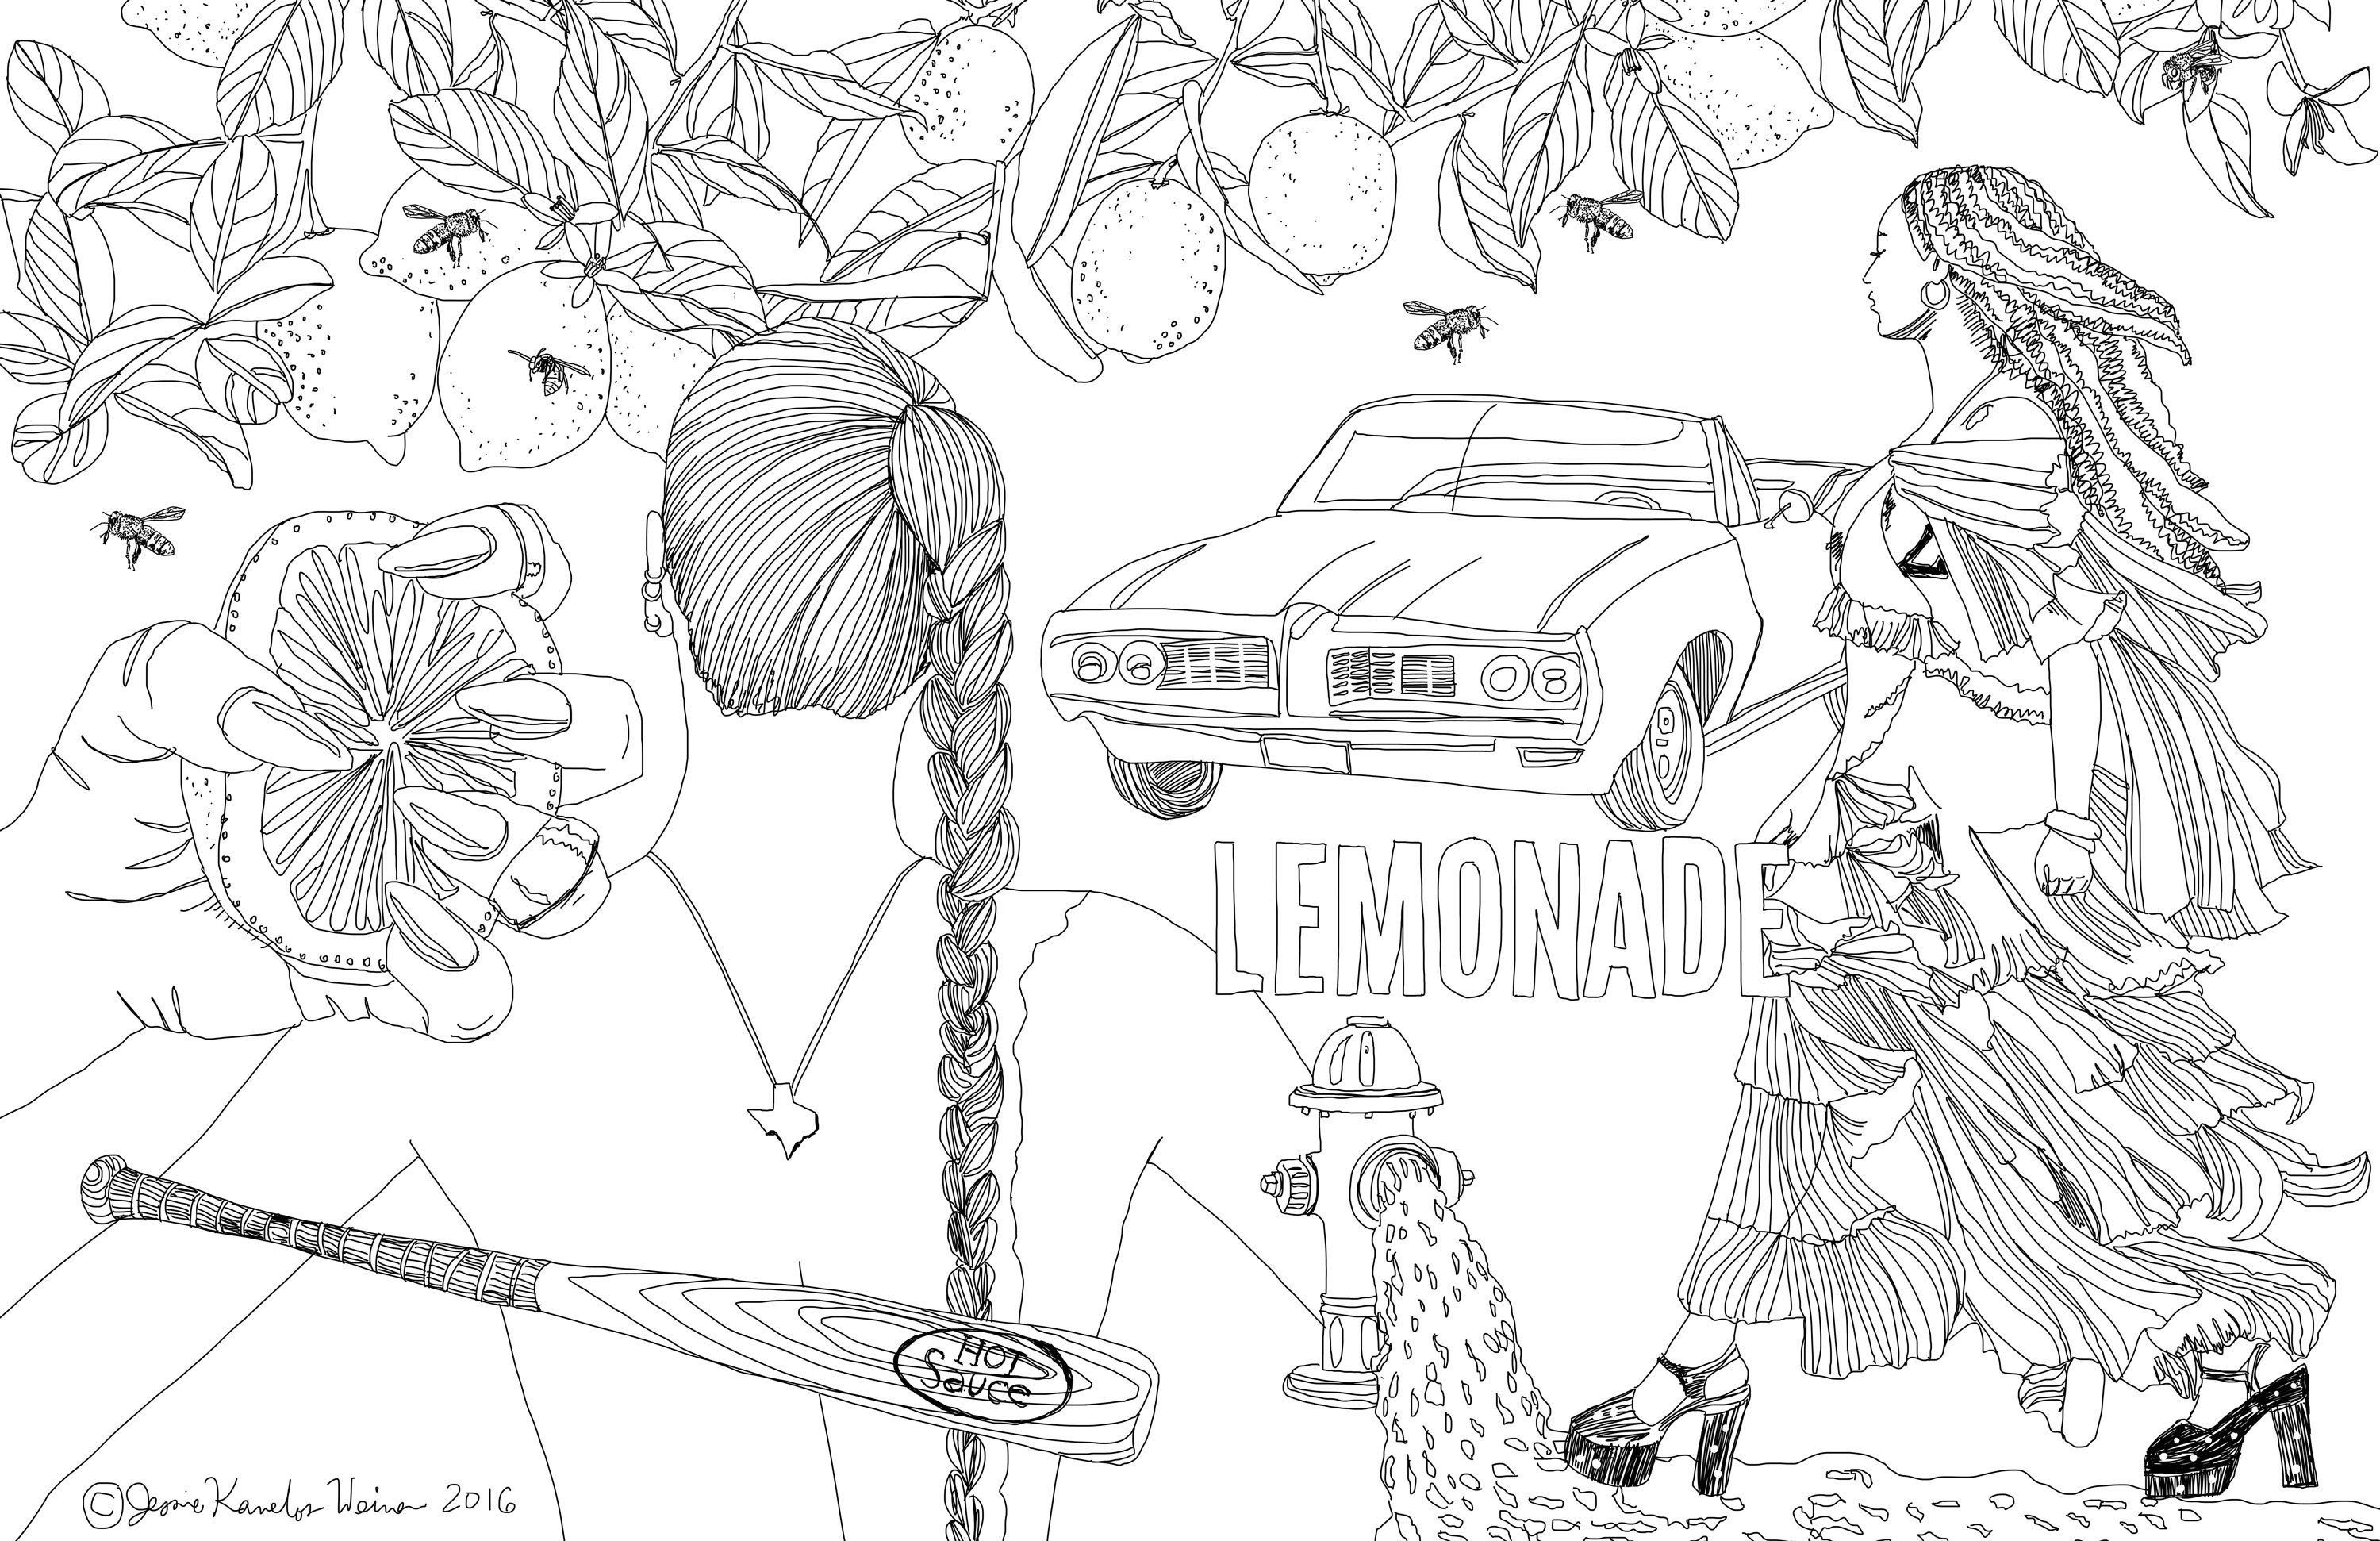 Turning Photos Into Coloring Pages Beautiful Beyonce S Lemonade May Be Made Into A Coloring Book Vogue Coloring Books Coloring Pages Fashion Coloring Book